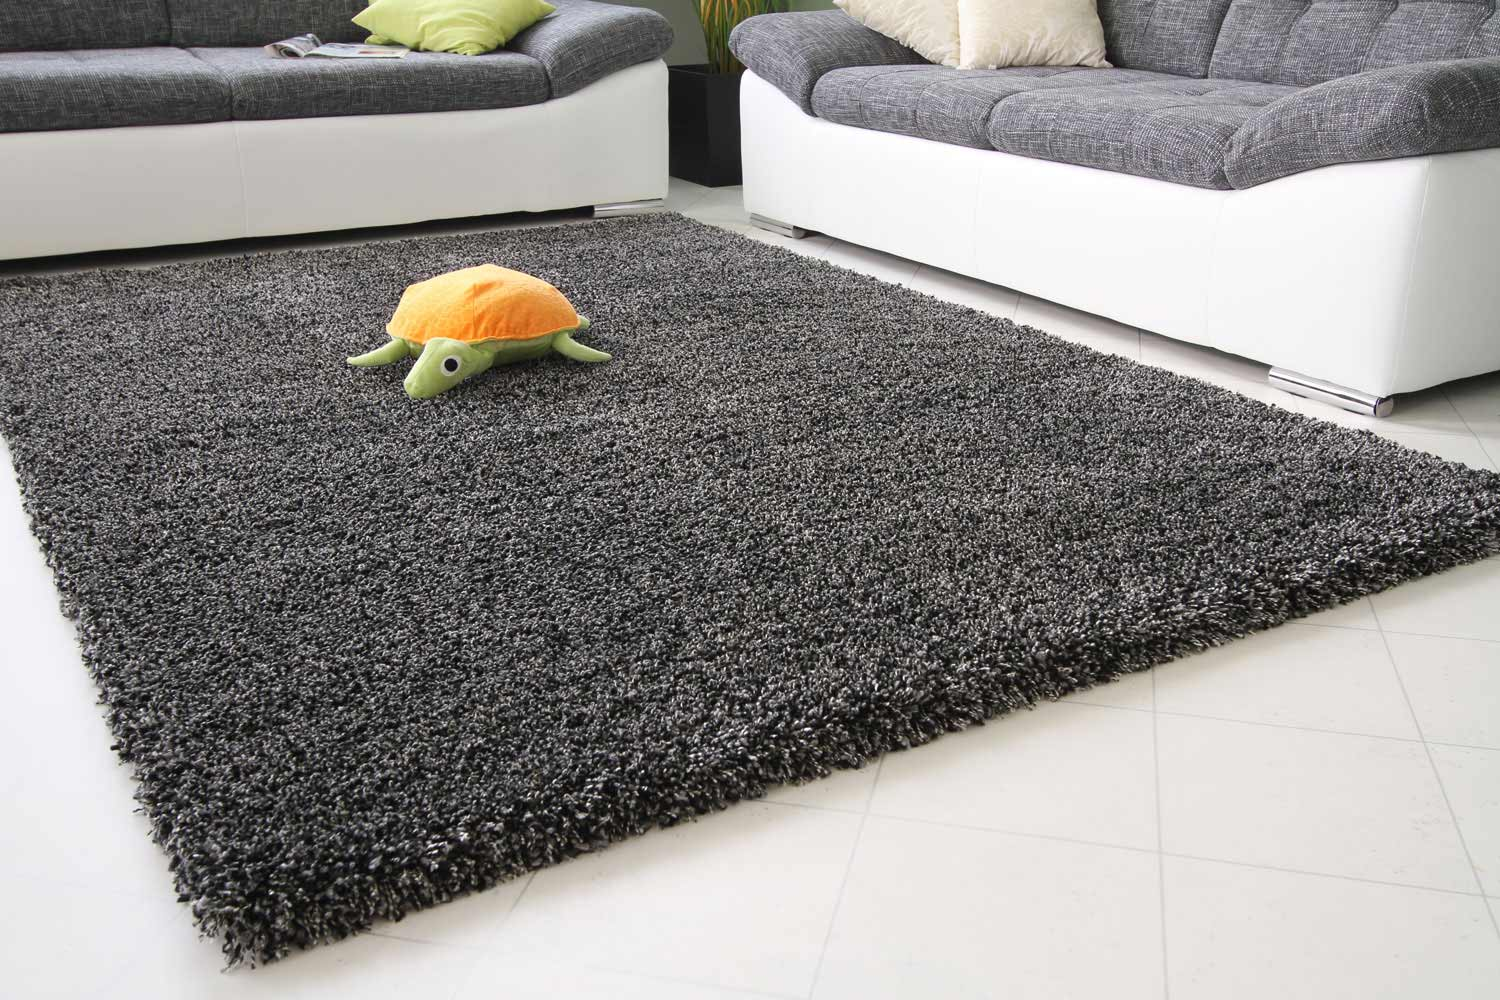 Teppich hochflor  Hochflor Teppich Next Funny | global-carpet